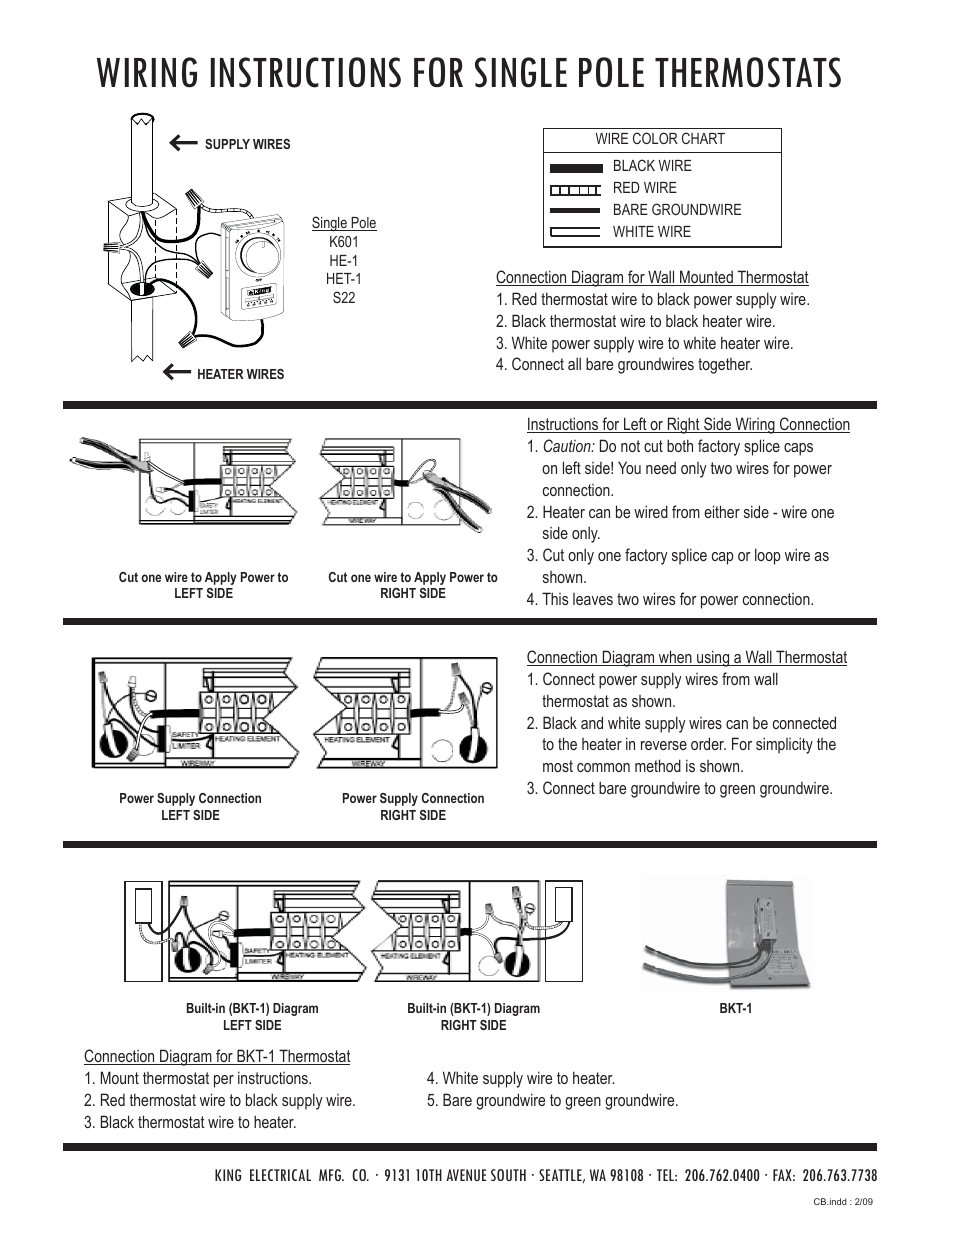 medium resolution of wiring instructions for single pole thermostats king electric model cb user manual page 2 4